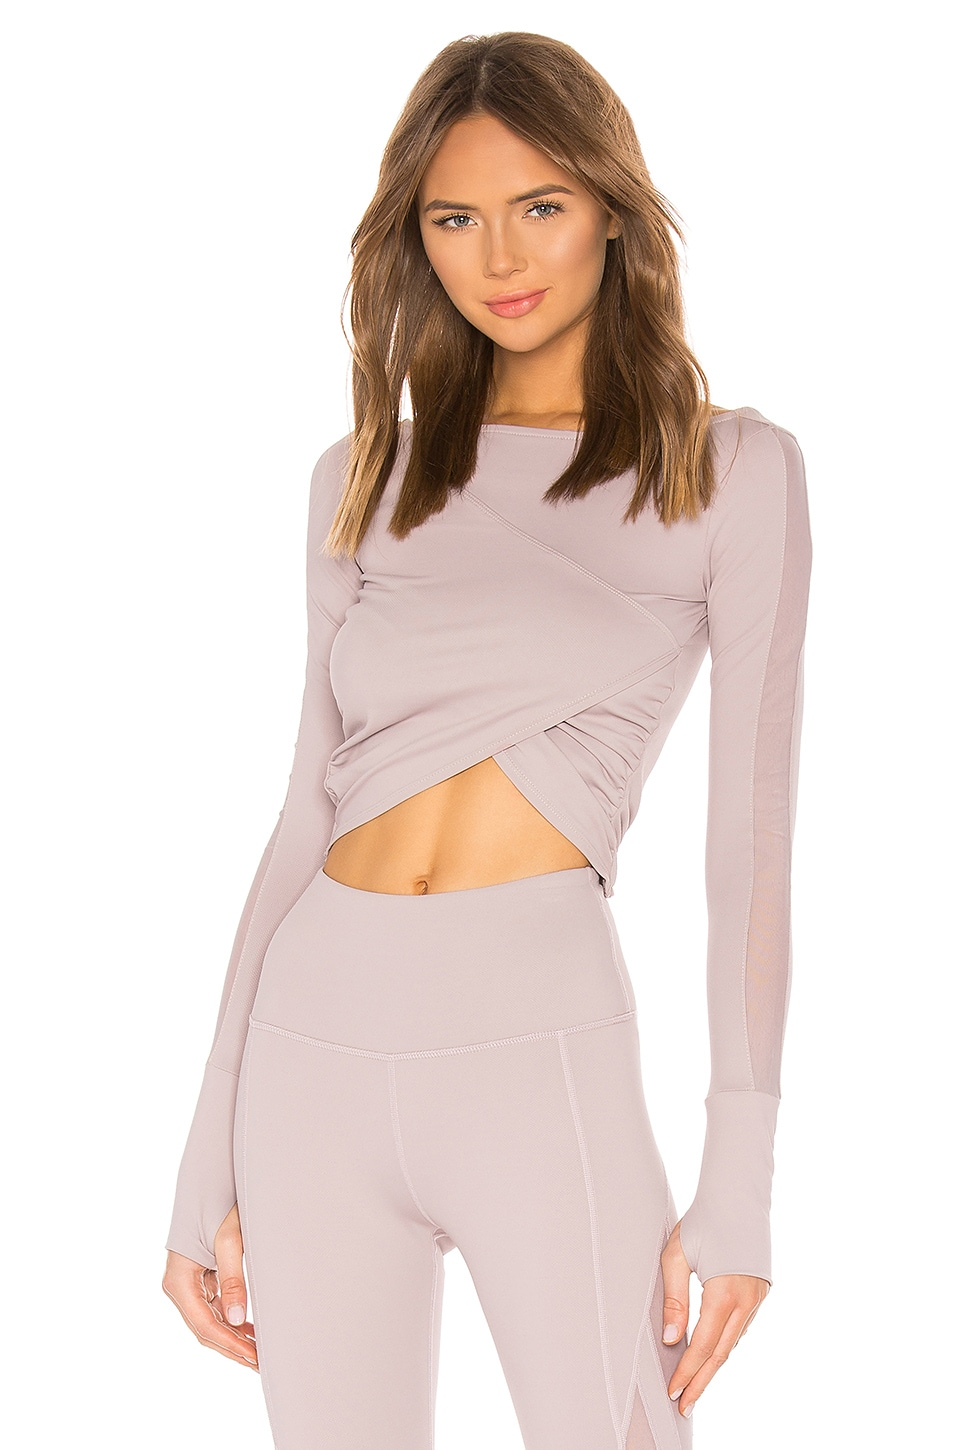 Nylora Rue Top in Mauve